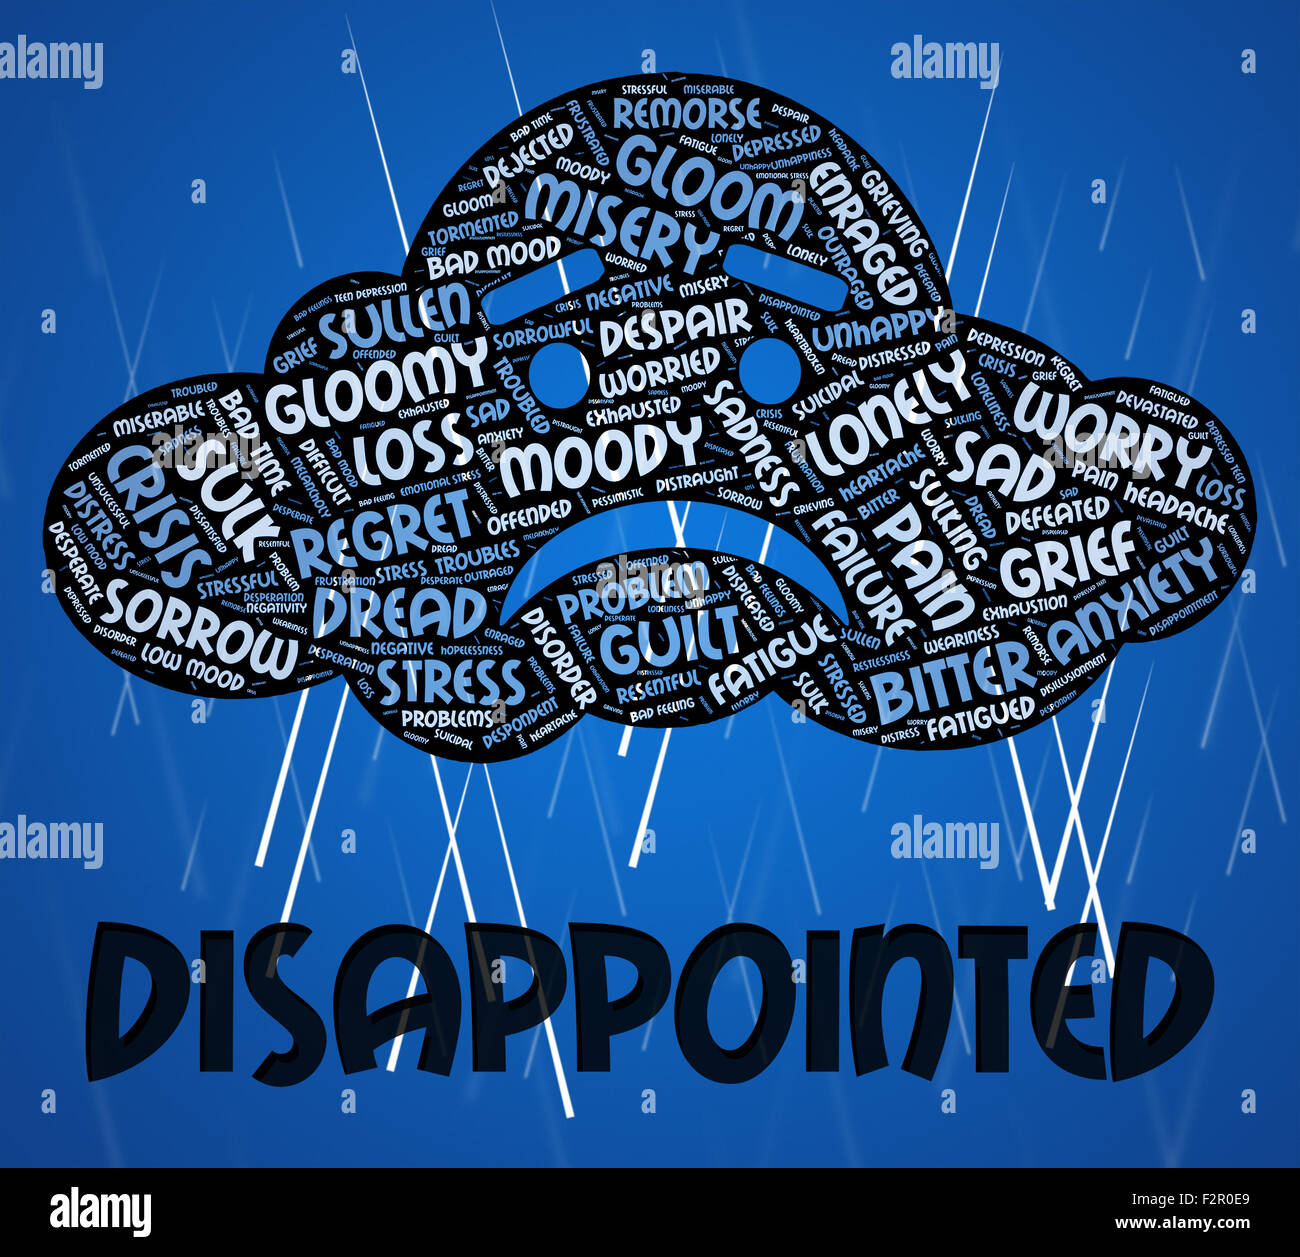 Disappointment Word Meaning Cast Down Stock Photos